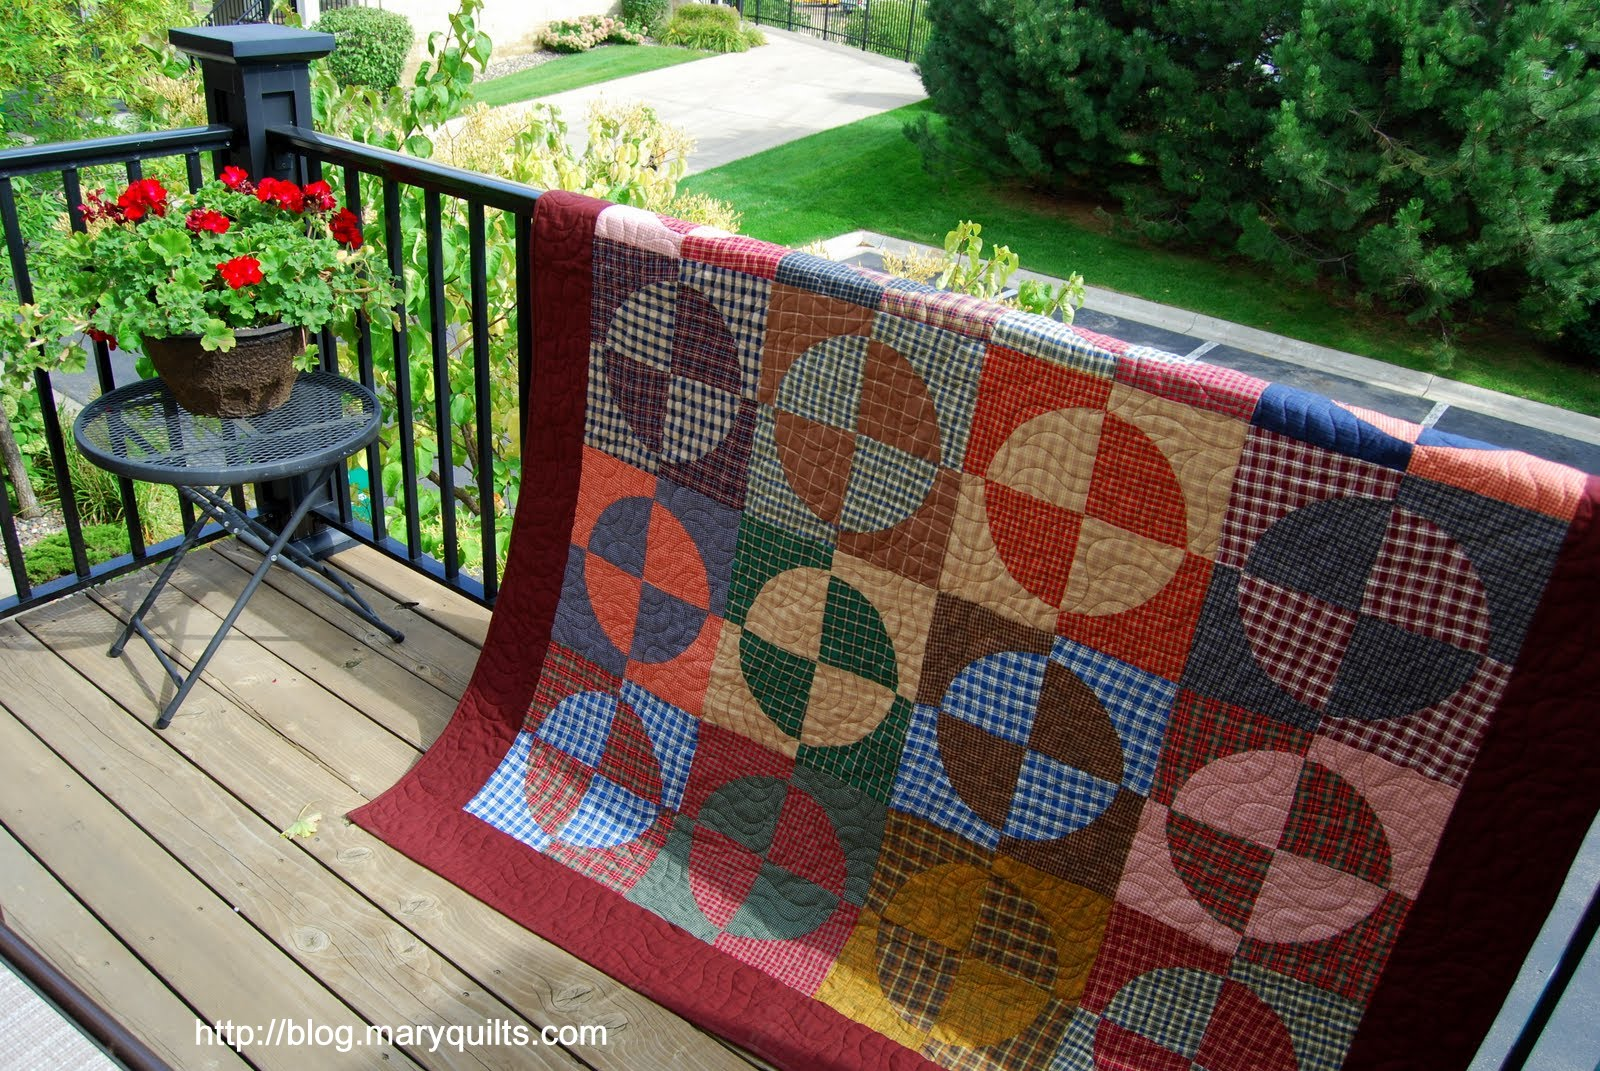 Instructions on my websitehttp://www.maryquilts.com/drunkards-path/